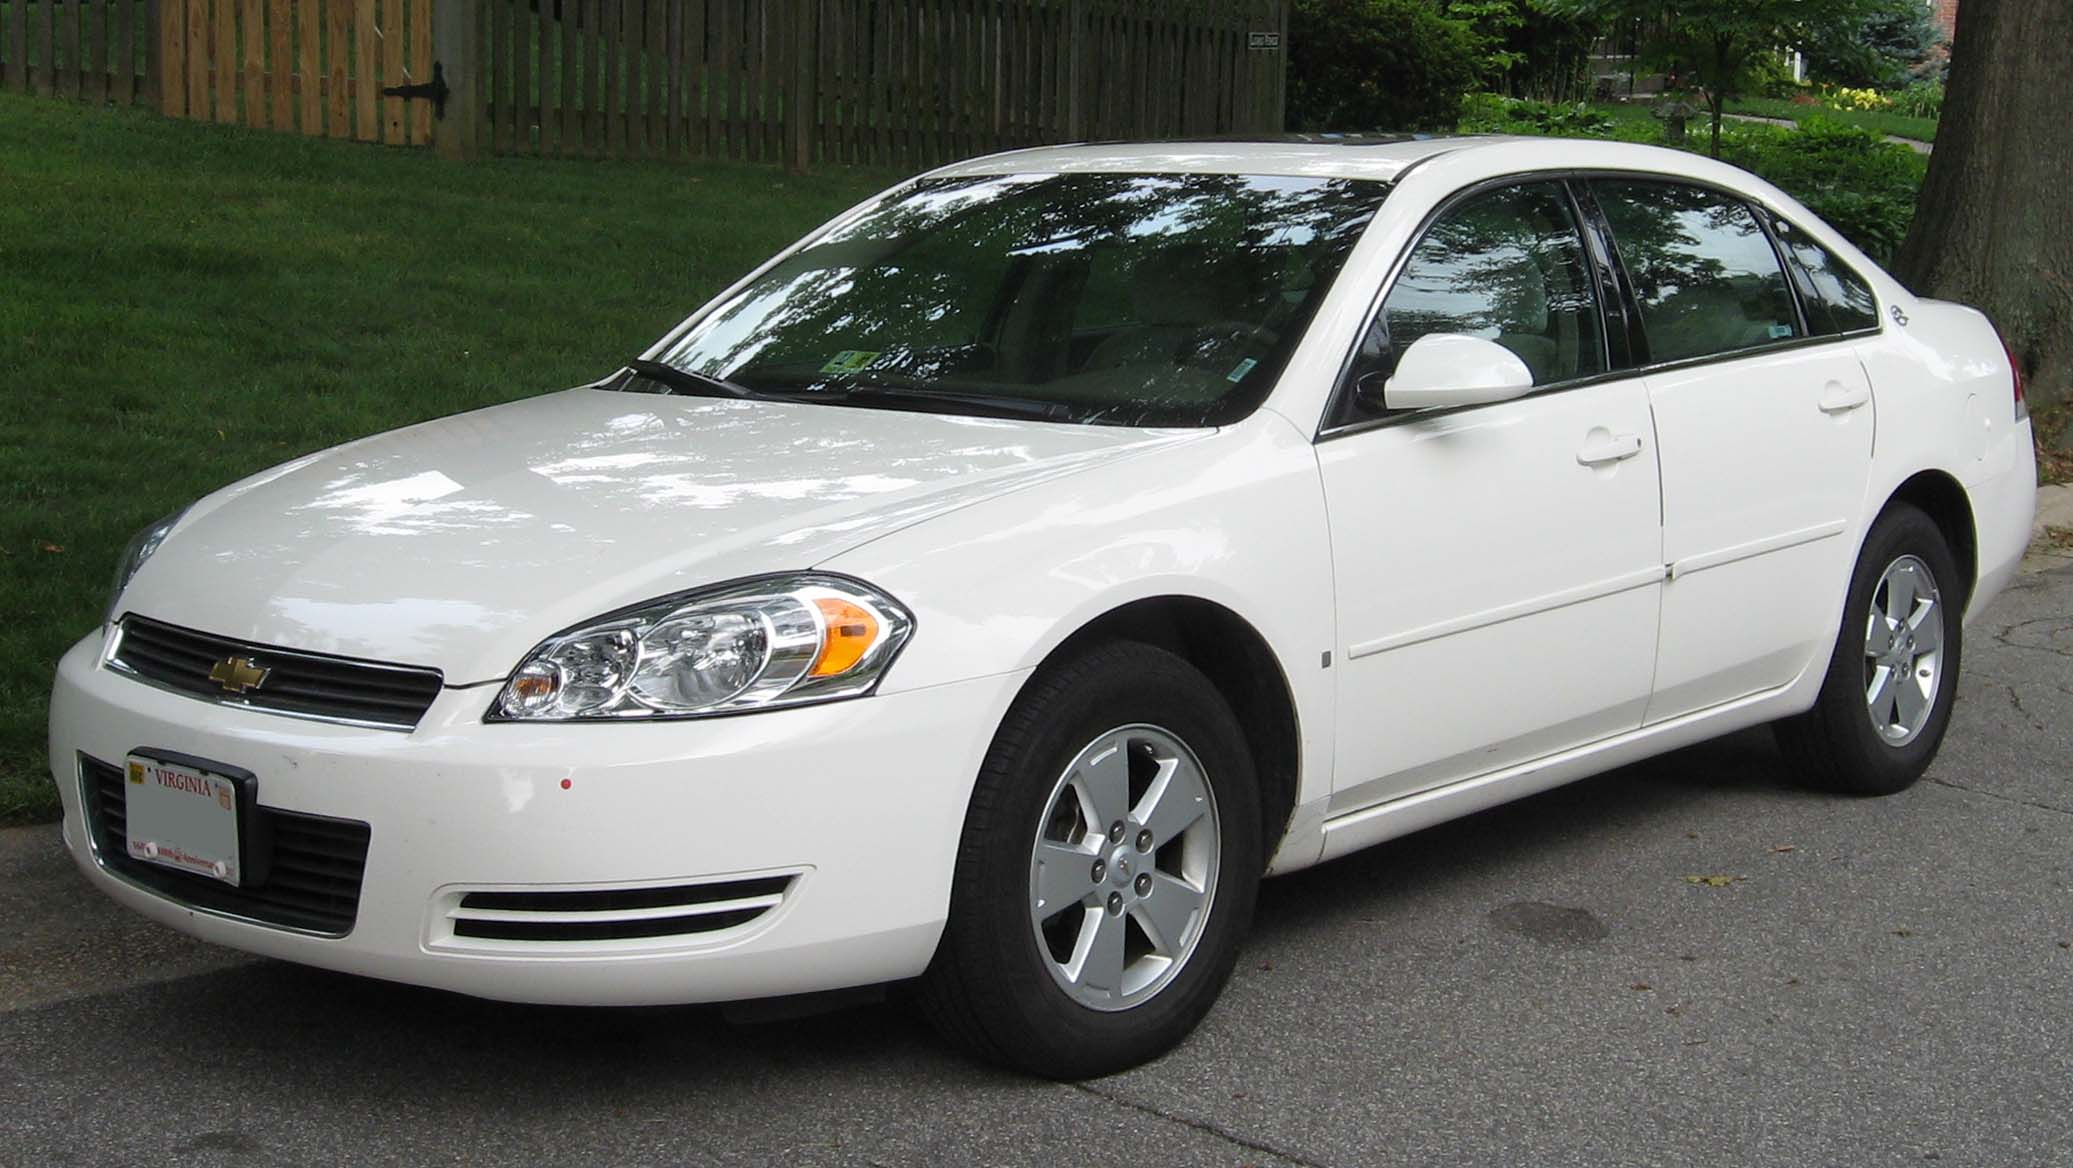 Amazoncom 2013 Chevrolet Impala Reviews Images and